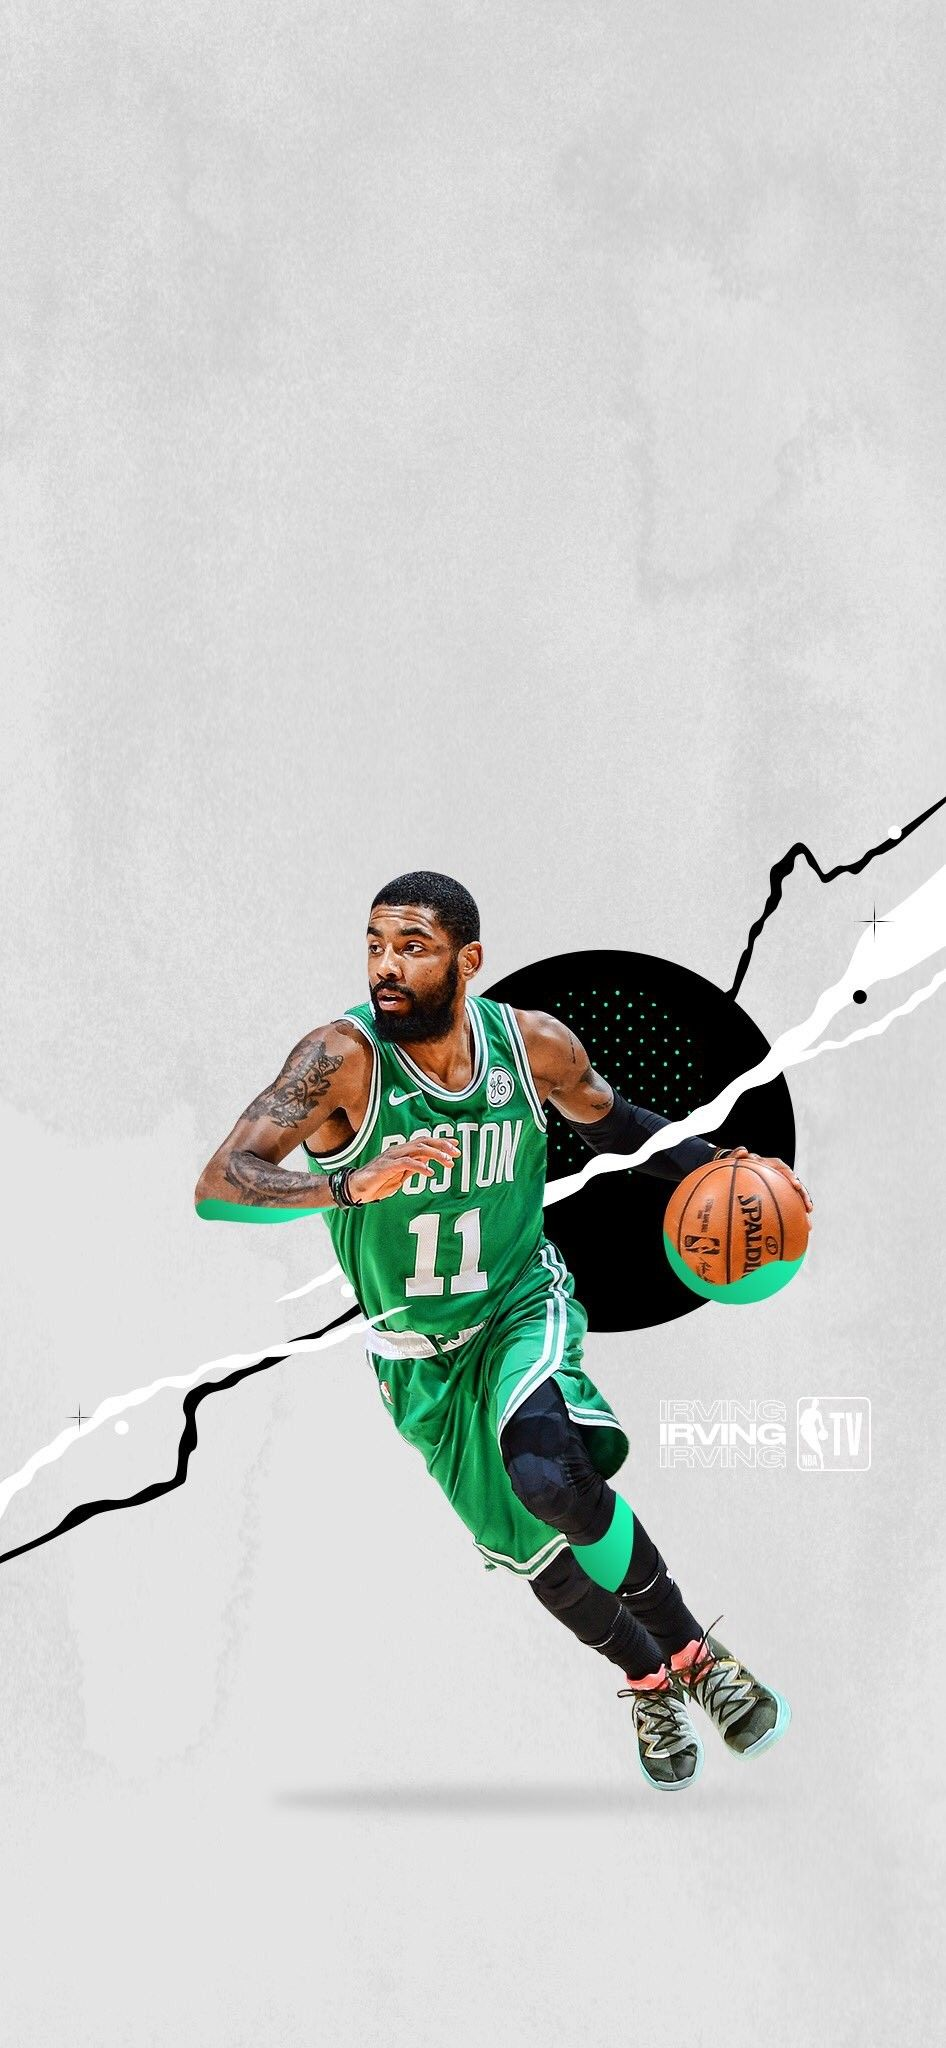 Pin by Ron Bersamina on Basketball (With images) Kyrie